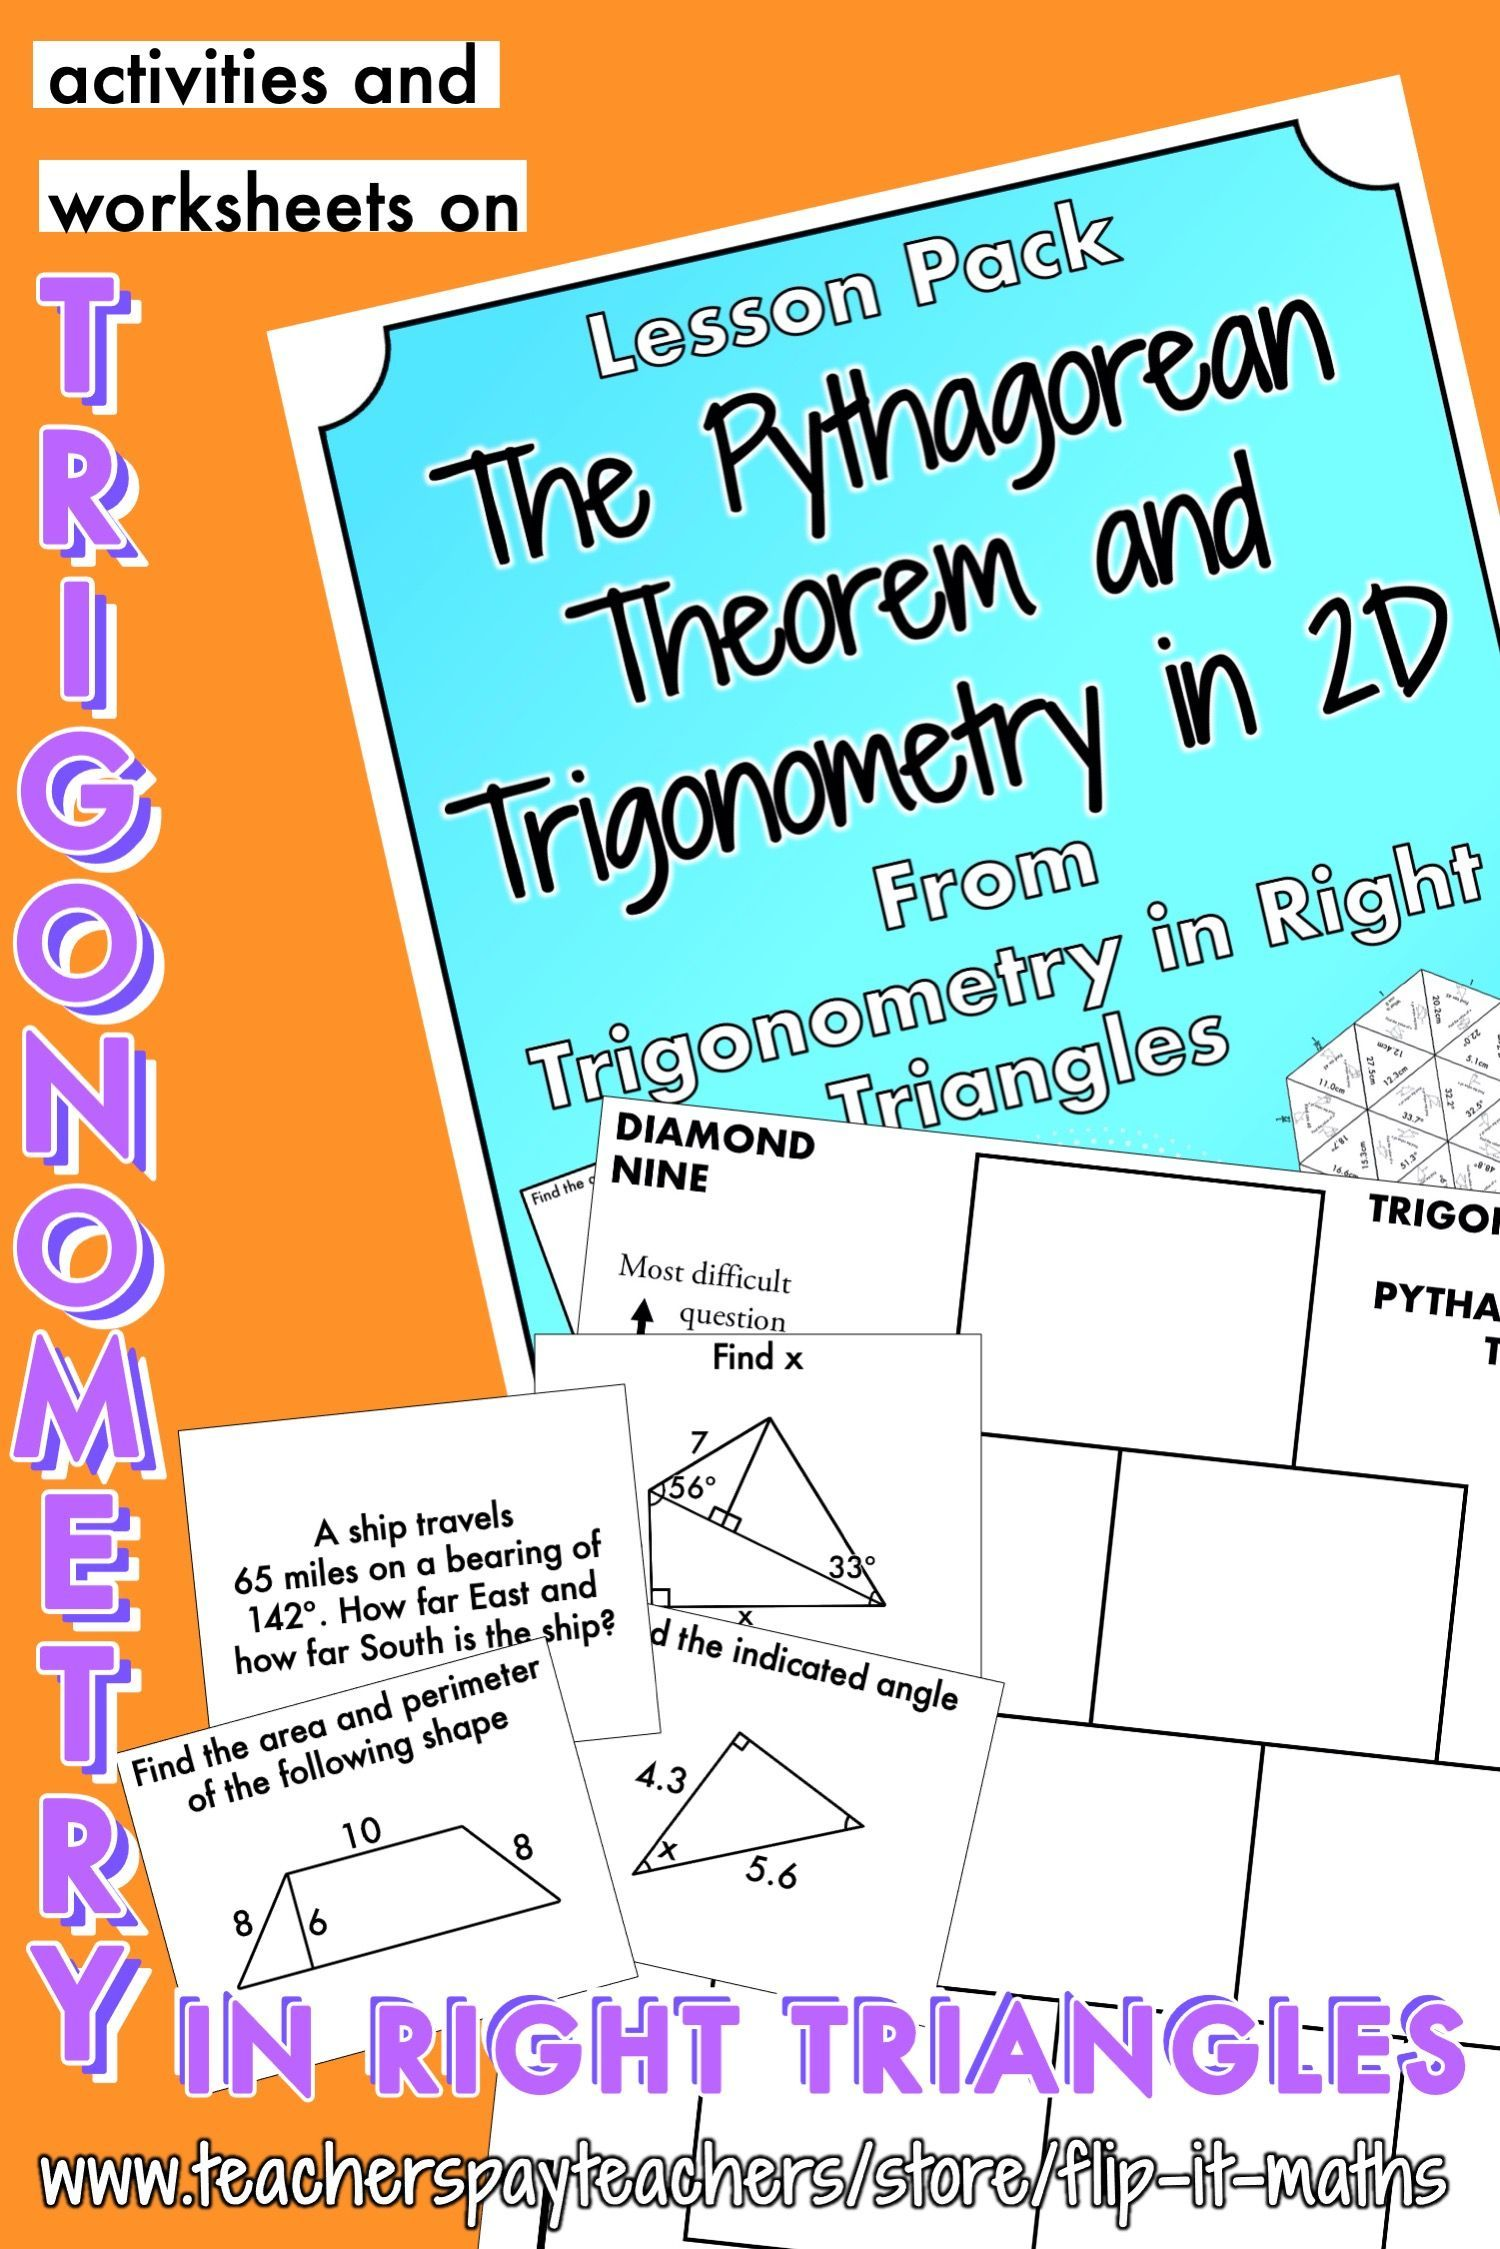 The Pythagorean Theorem And Trigonometry In 2d